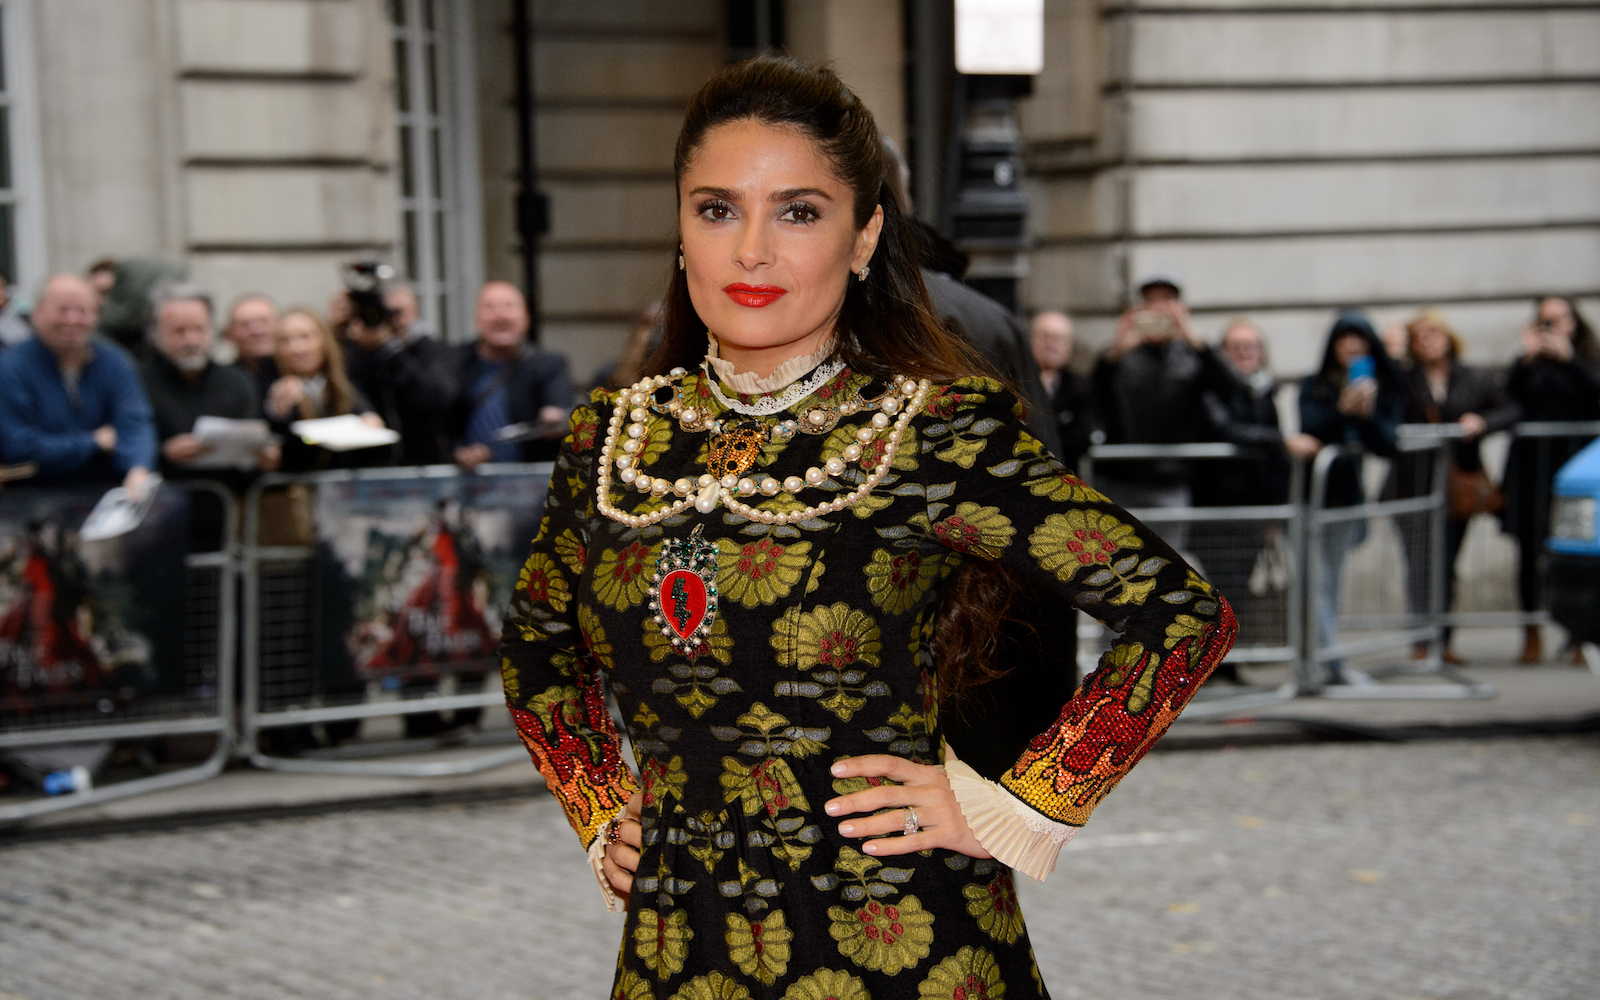 Salma Hayek poses for photographers upon arrival at the UK premiere of the film 'Tale Of Tales' at a central London cinema, London, Wednesday 1 June, 2016. (Photo by Jonathan Short/Invision/AP)